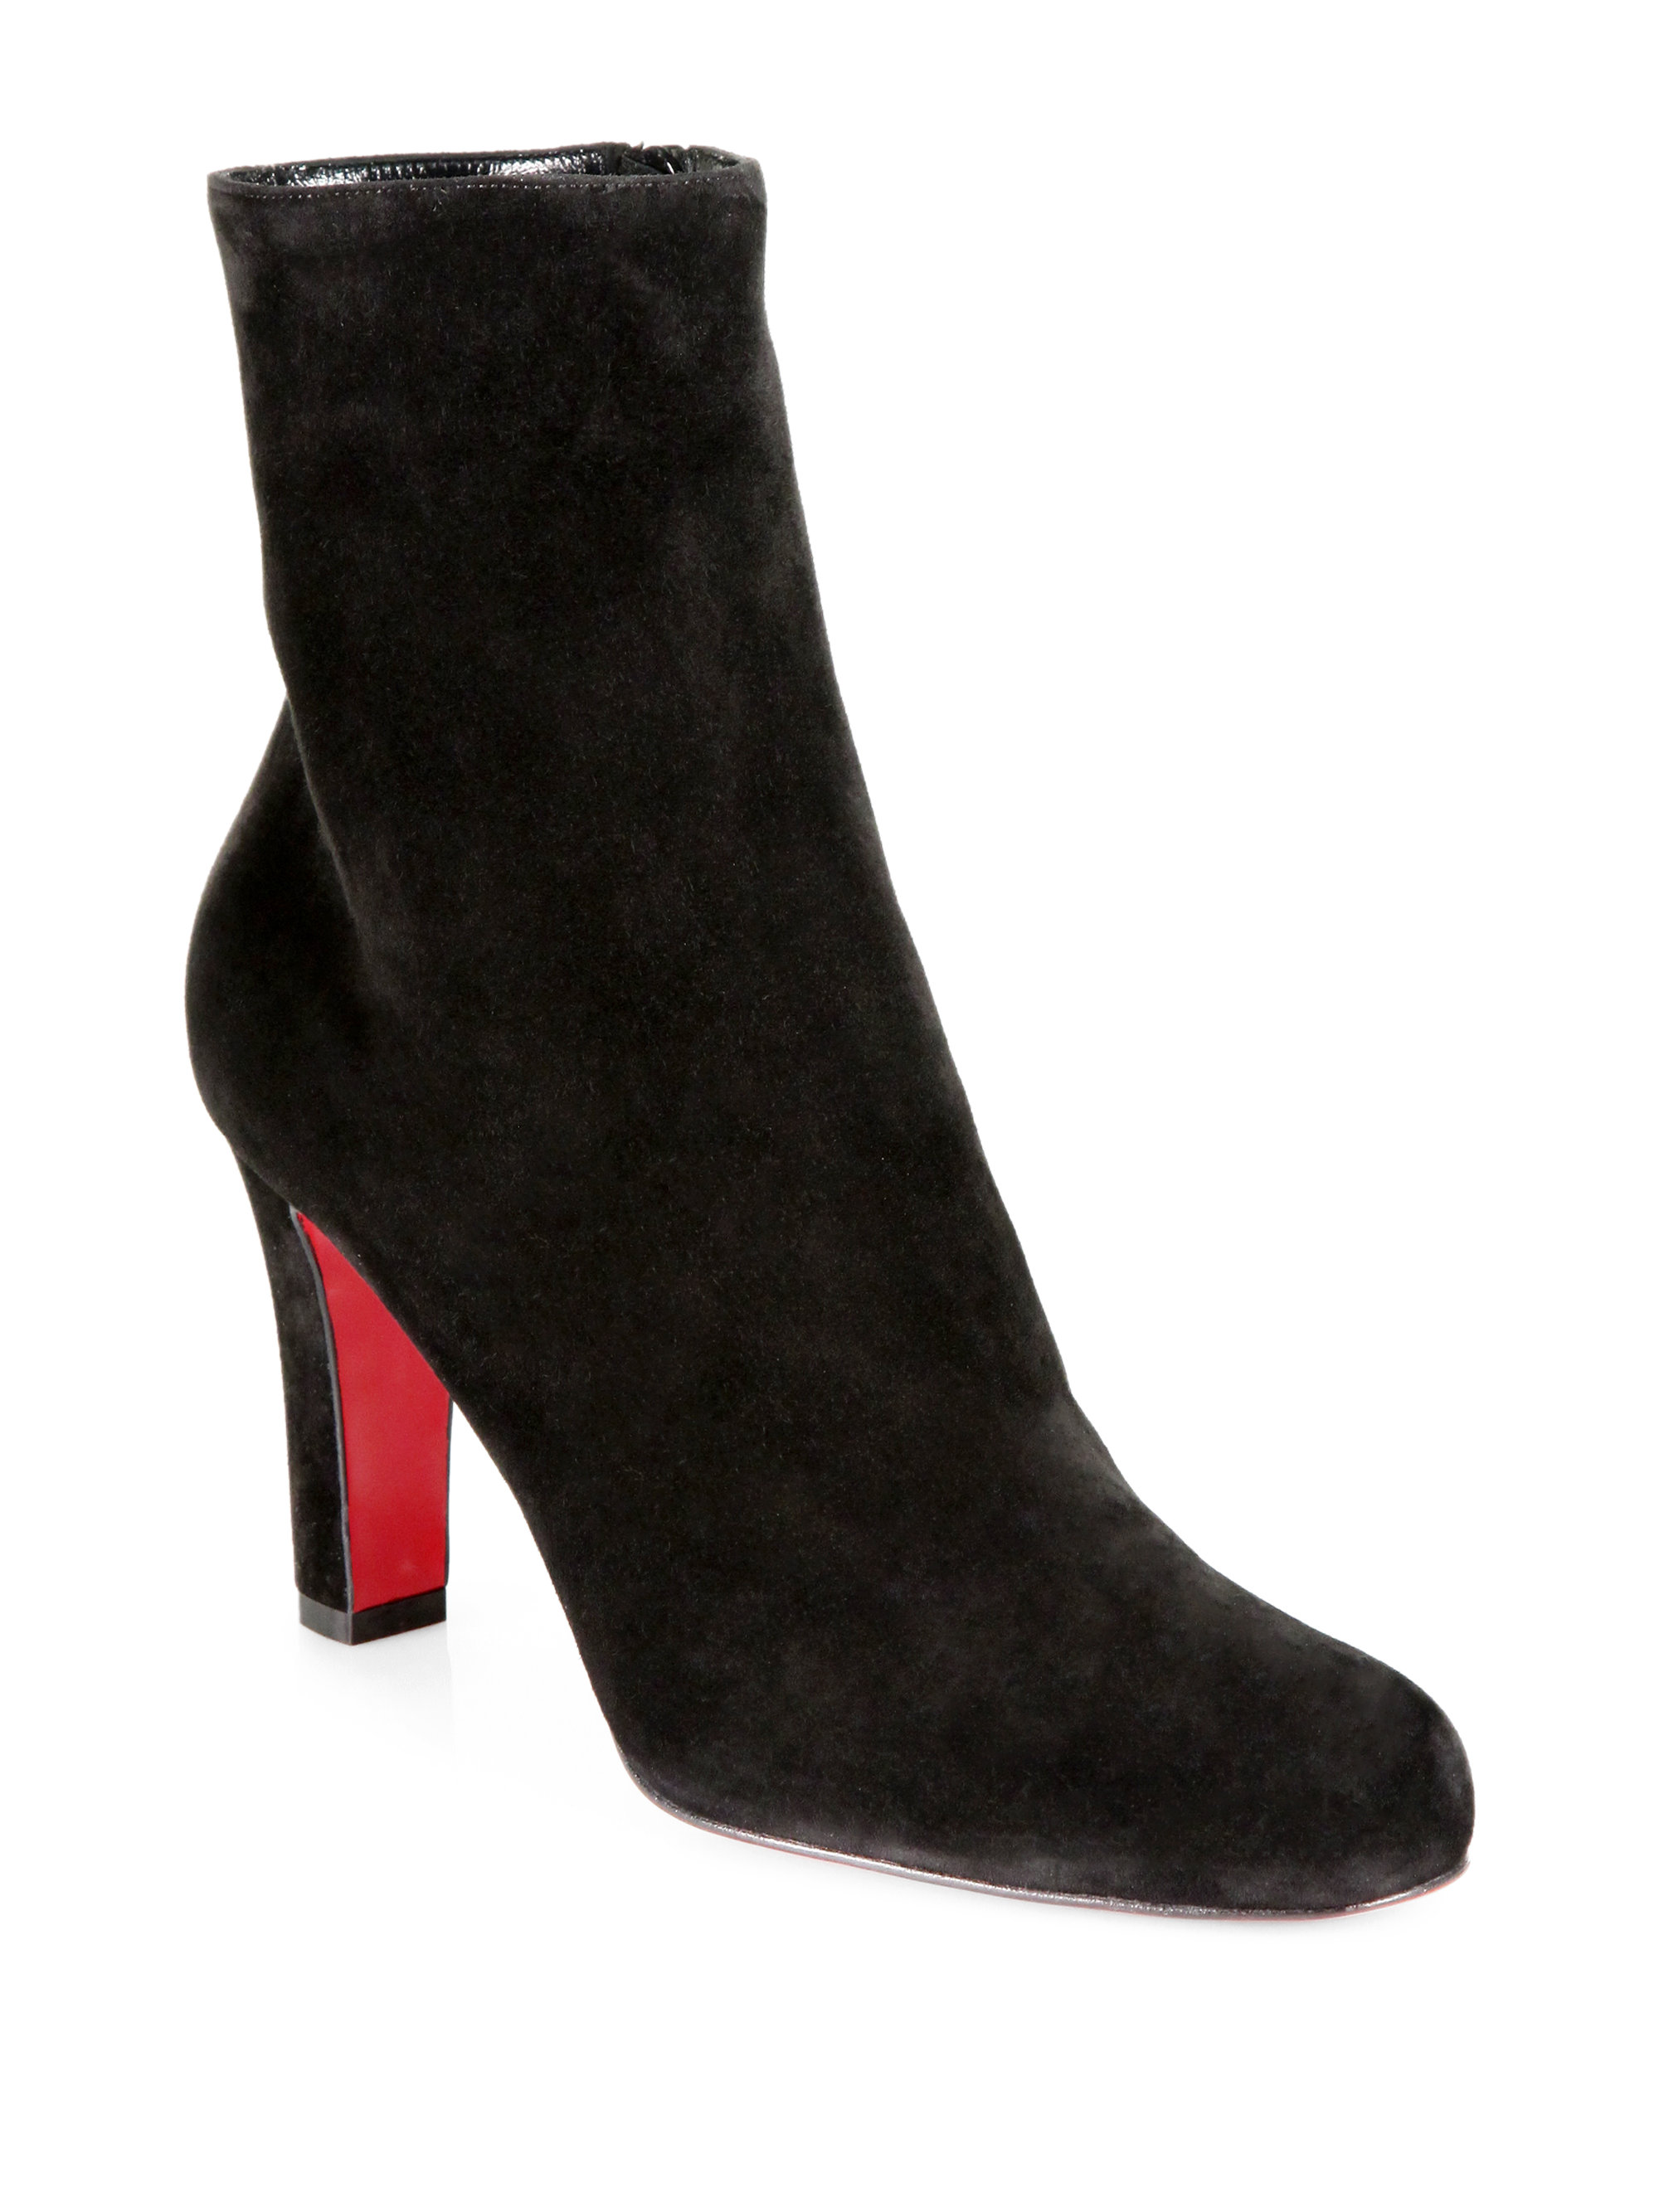 sports shoes b4c41 3dfb6 cheap louboutin black suede ankle boots 68f19 f2f6e